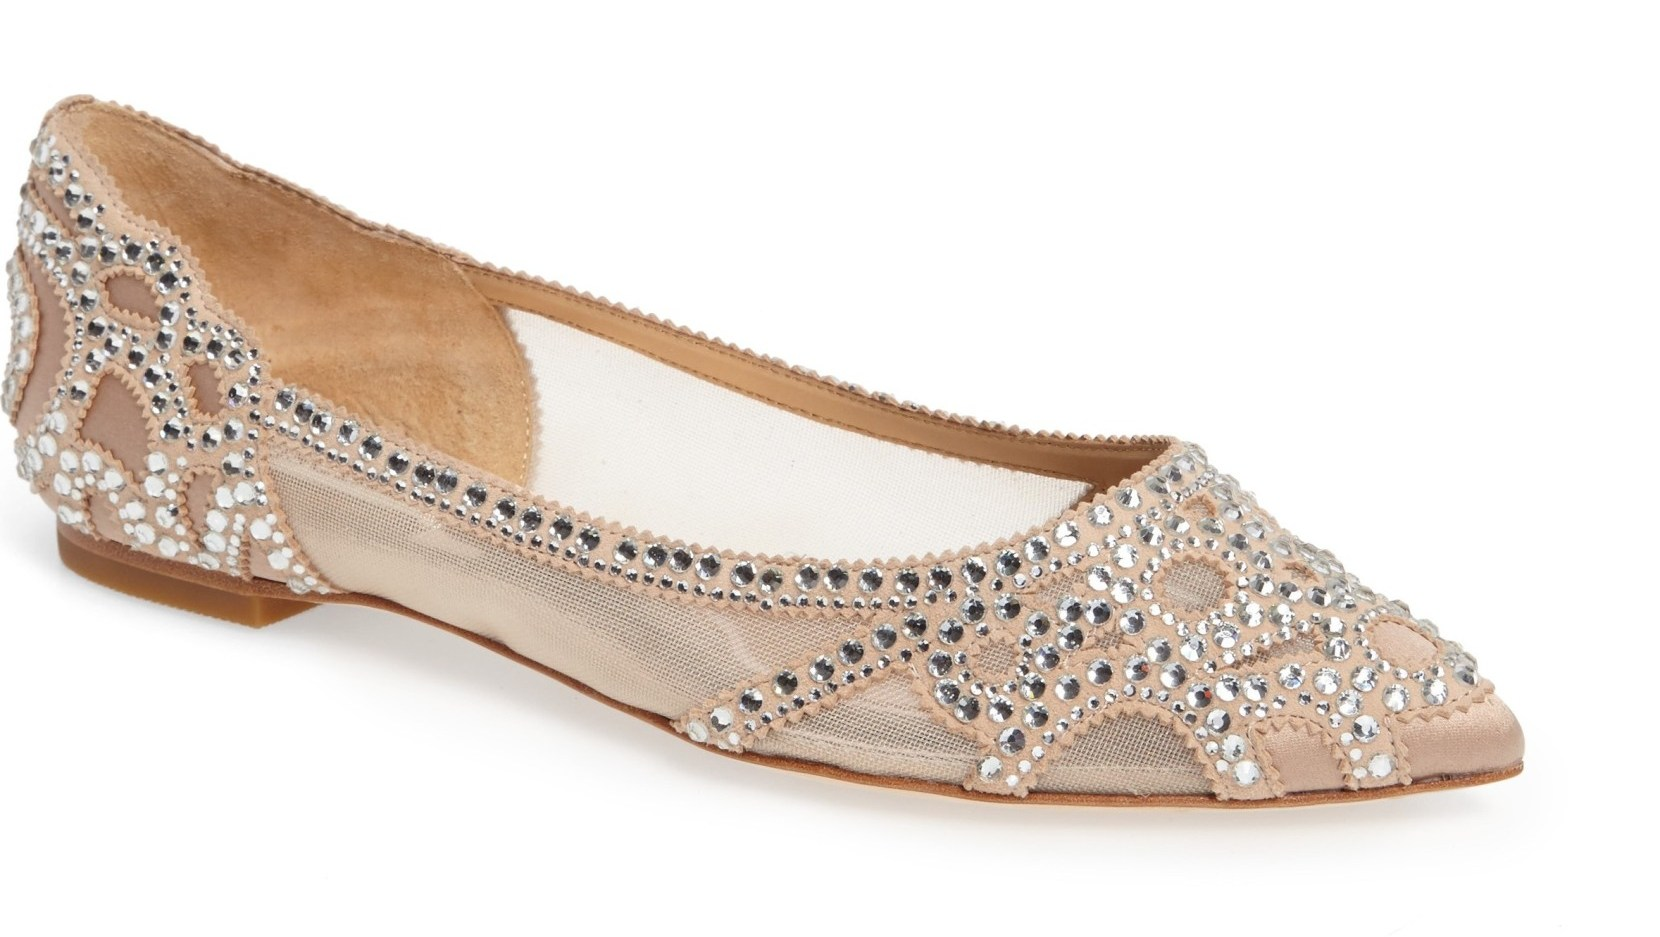 Badgley Mischa crystal flats